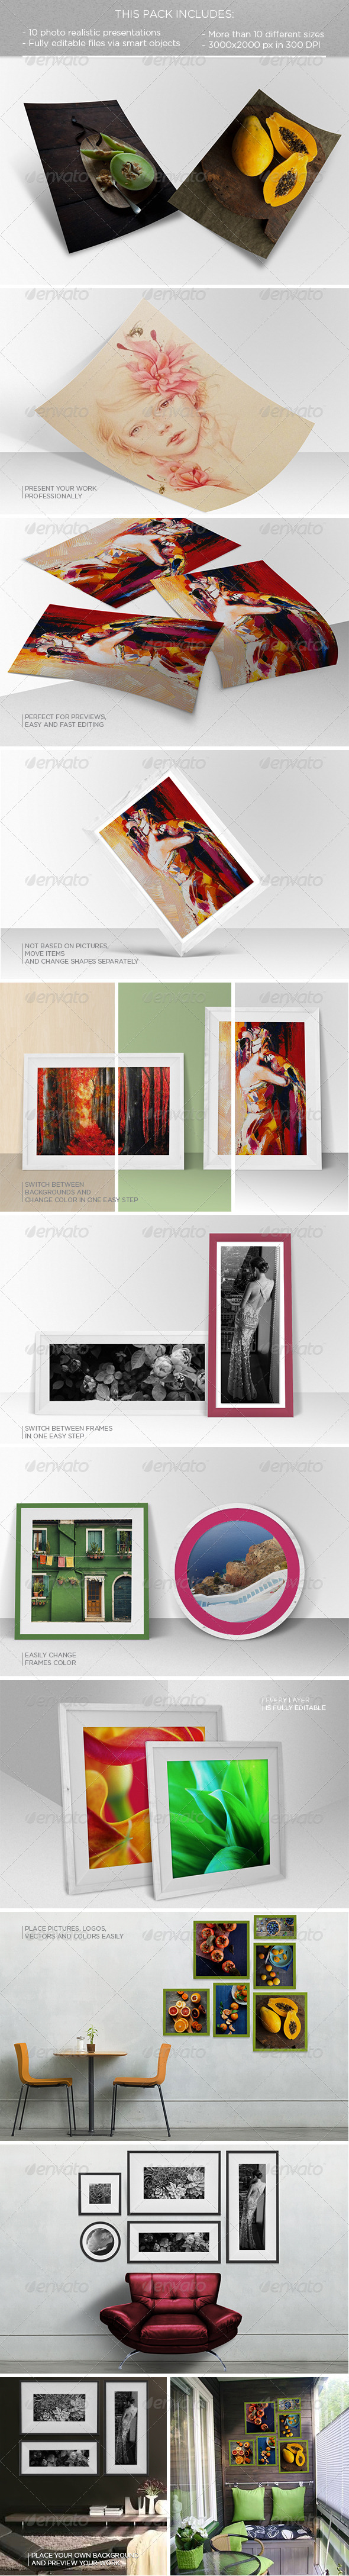 GraphicRiver Poster and Frame Mockup 8730763